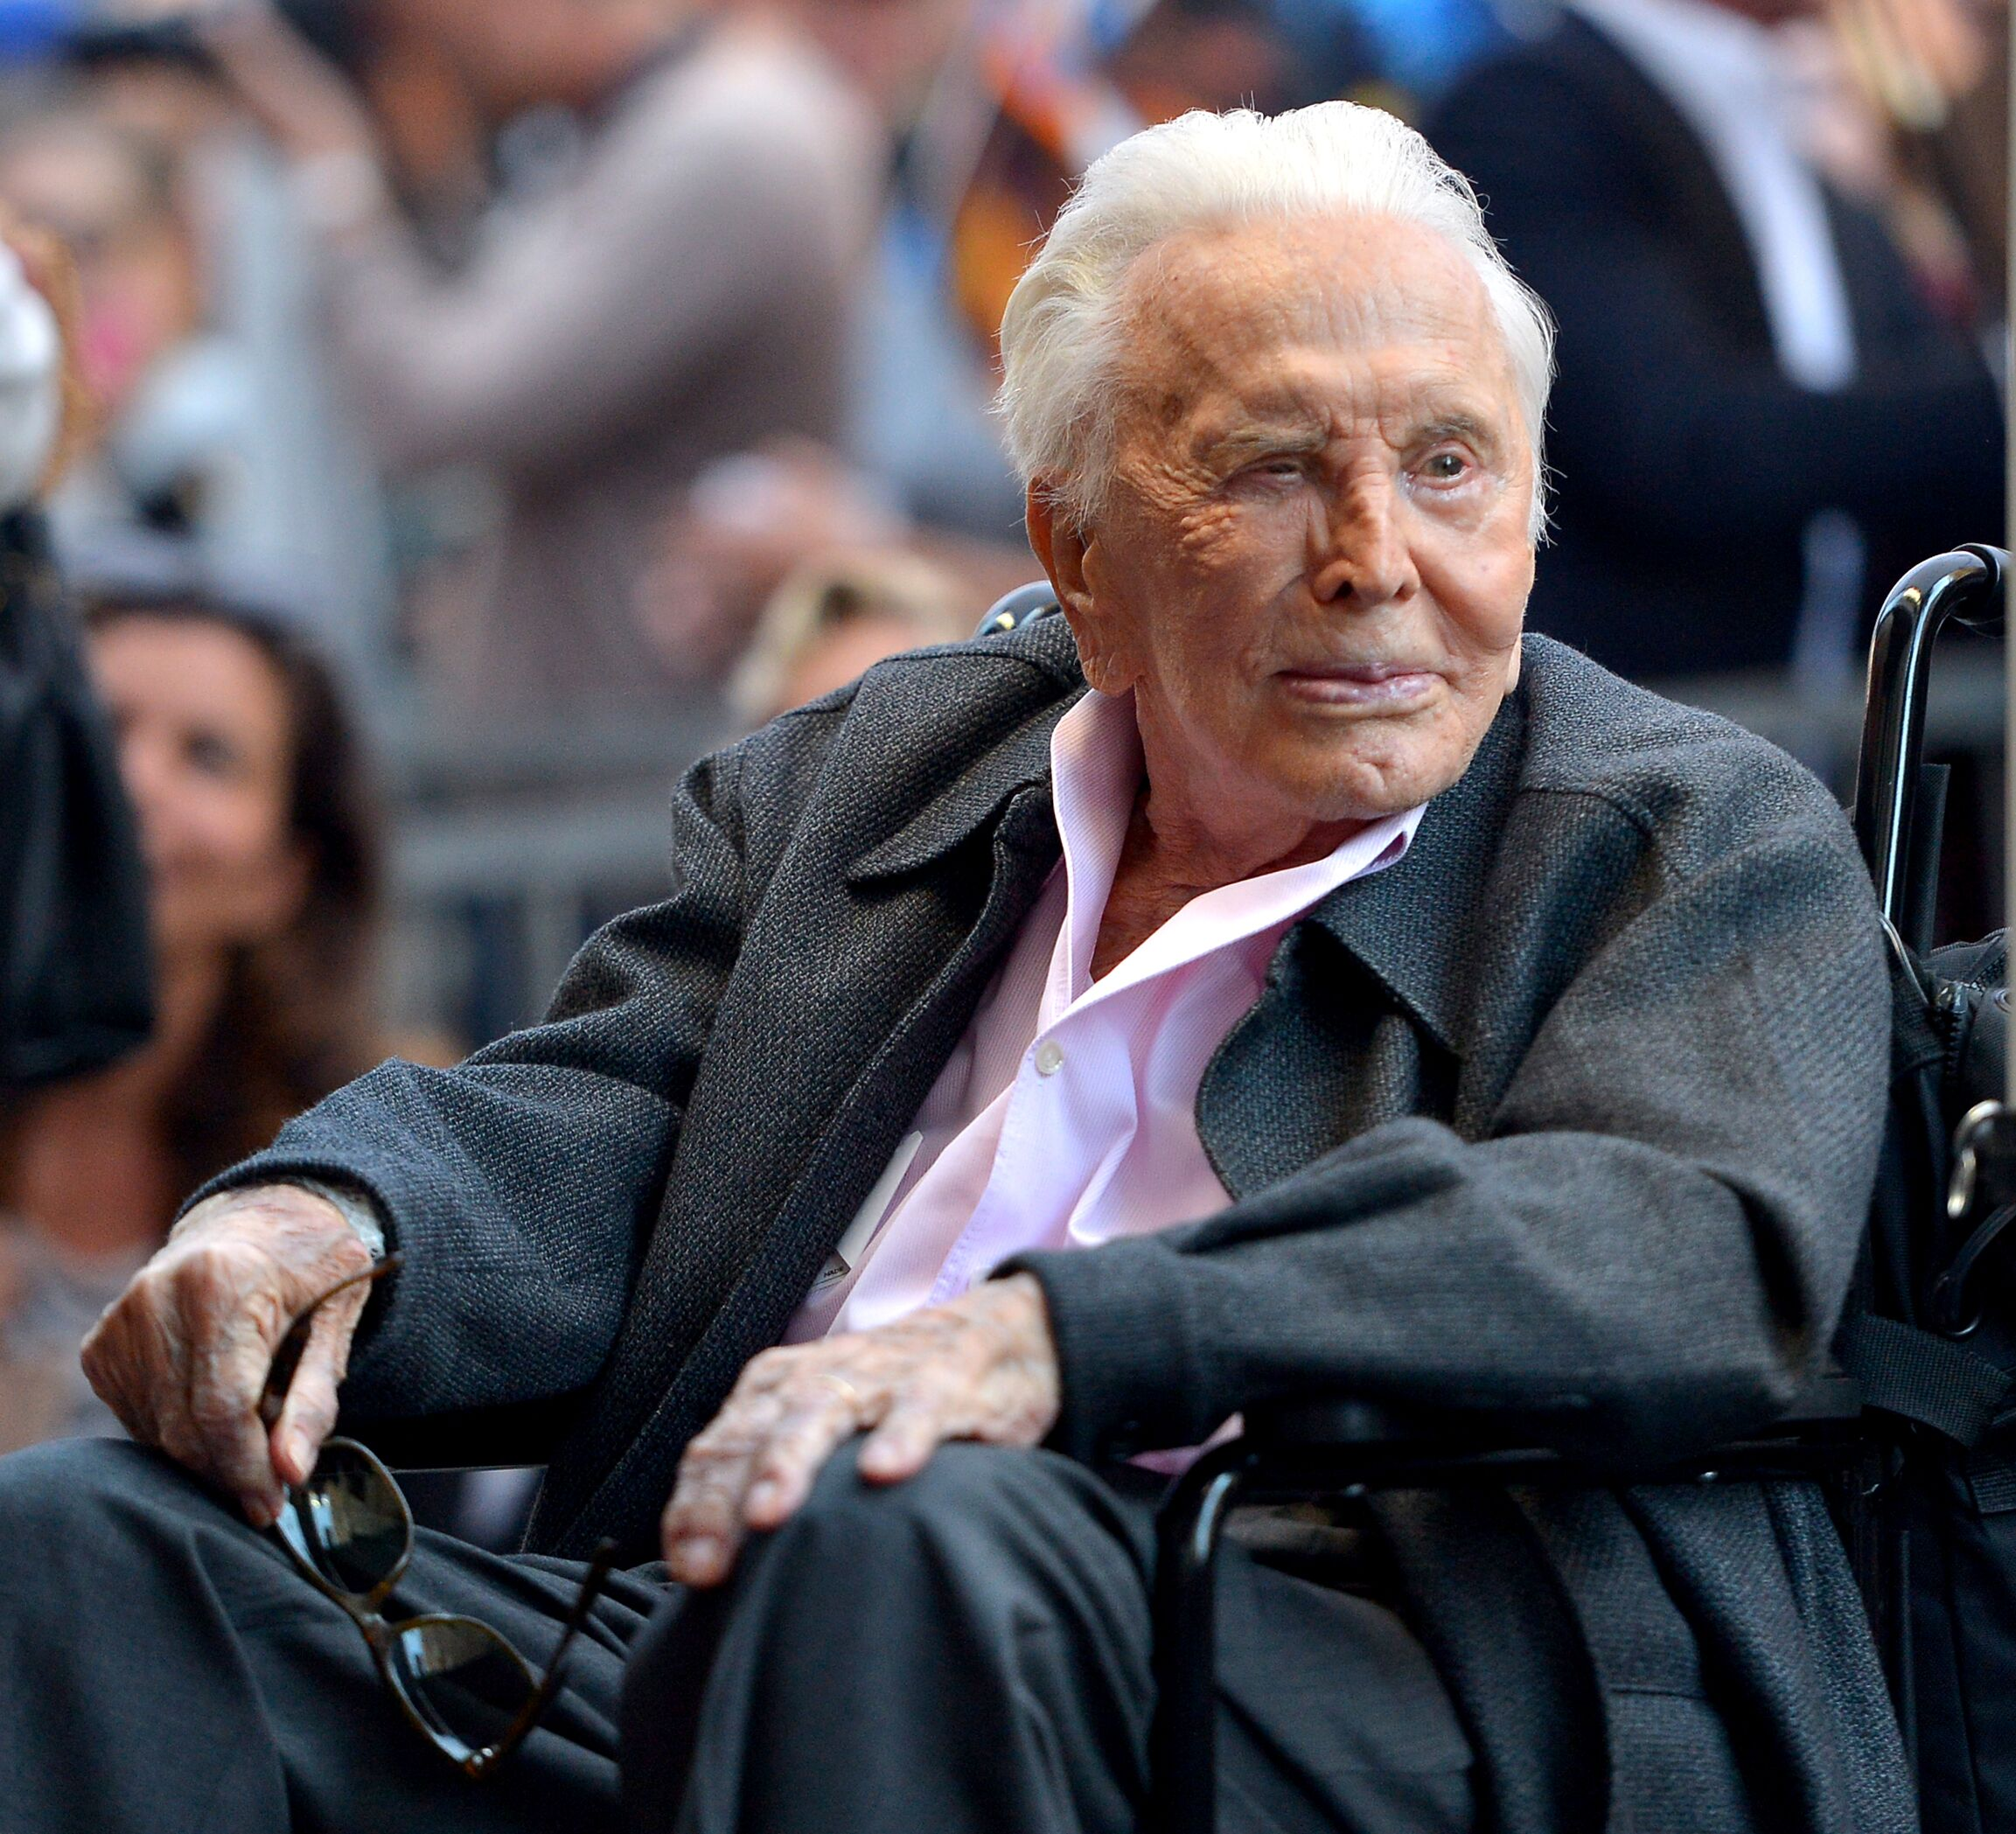 Kirk Douglas assiste à la cérémonie du Hollywood Walk of Fame en l'honneur de Michael Douglas sur Hollywood Boulevard le 6 novembre 2018. | Photo : Getty Images